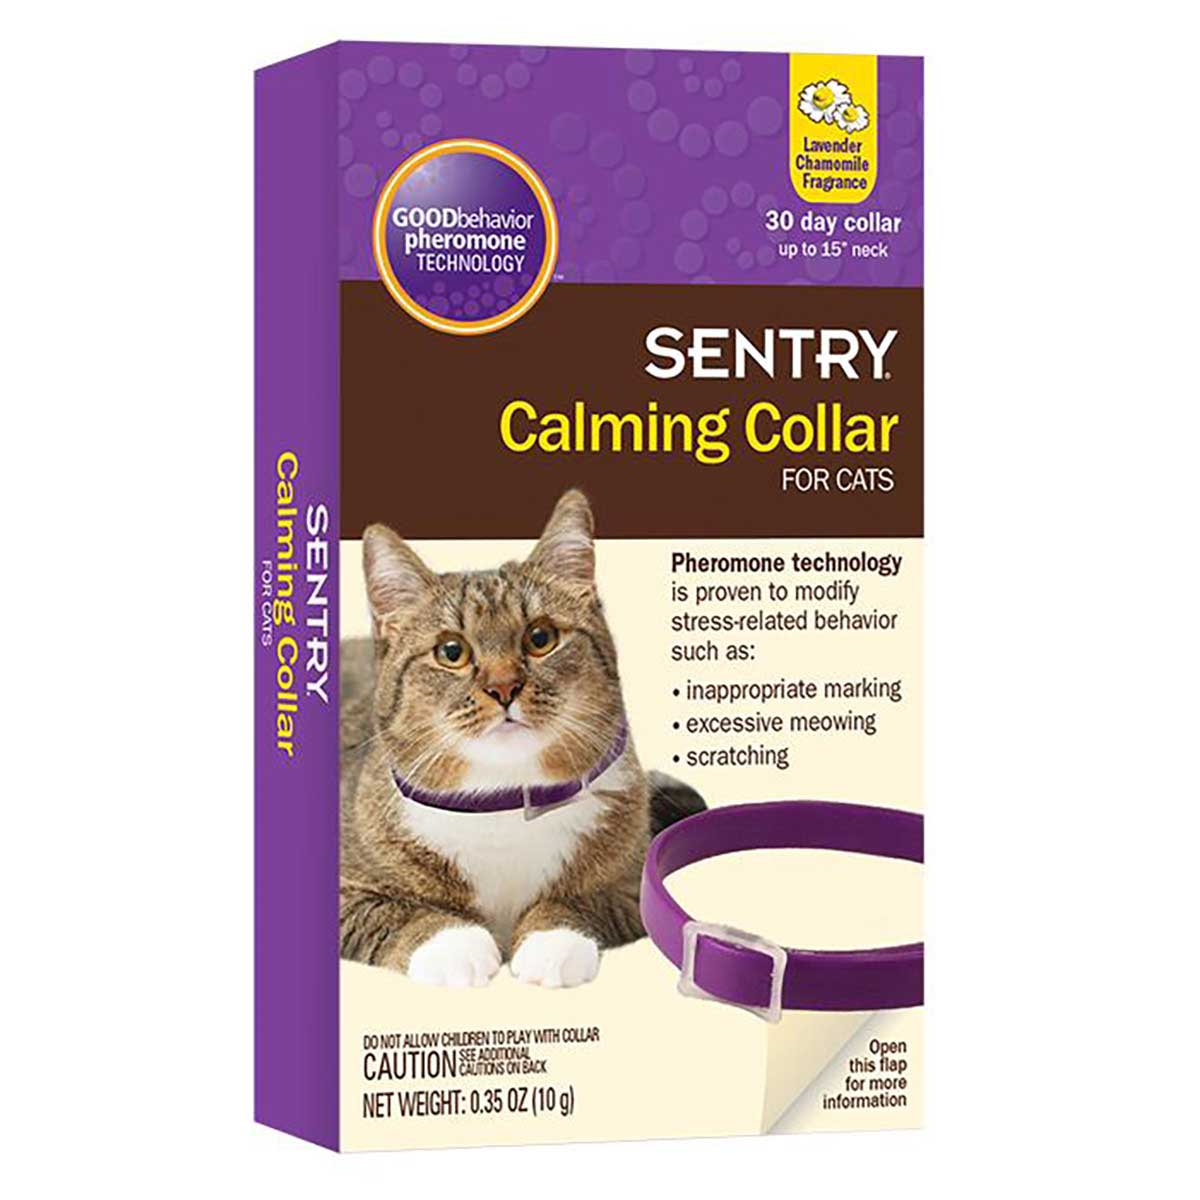 Sentry Calming Collars For Kittens & Cats Fits Necks Up To 15 inches